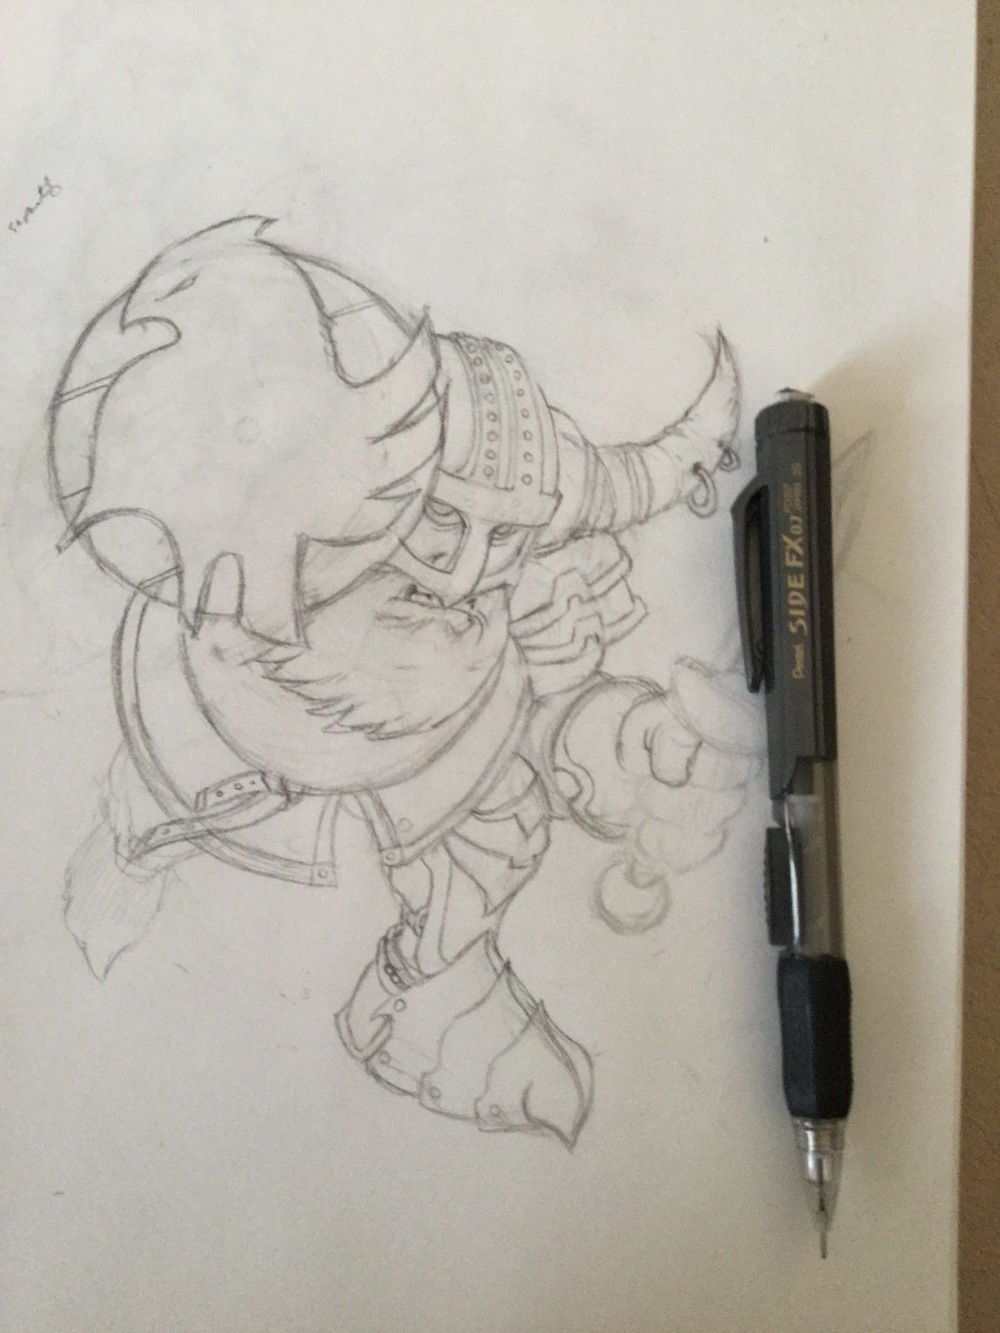 Original sketch of the Dwarf Warrior, drawn with mechanical pencil.